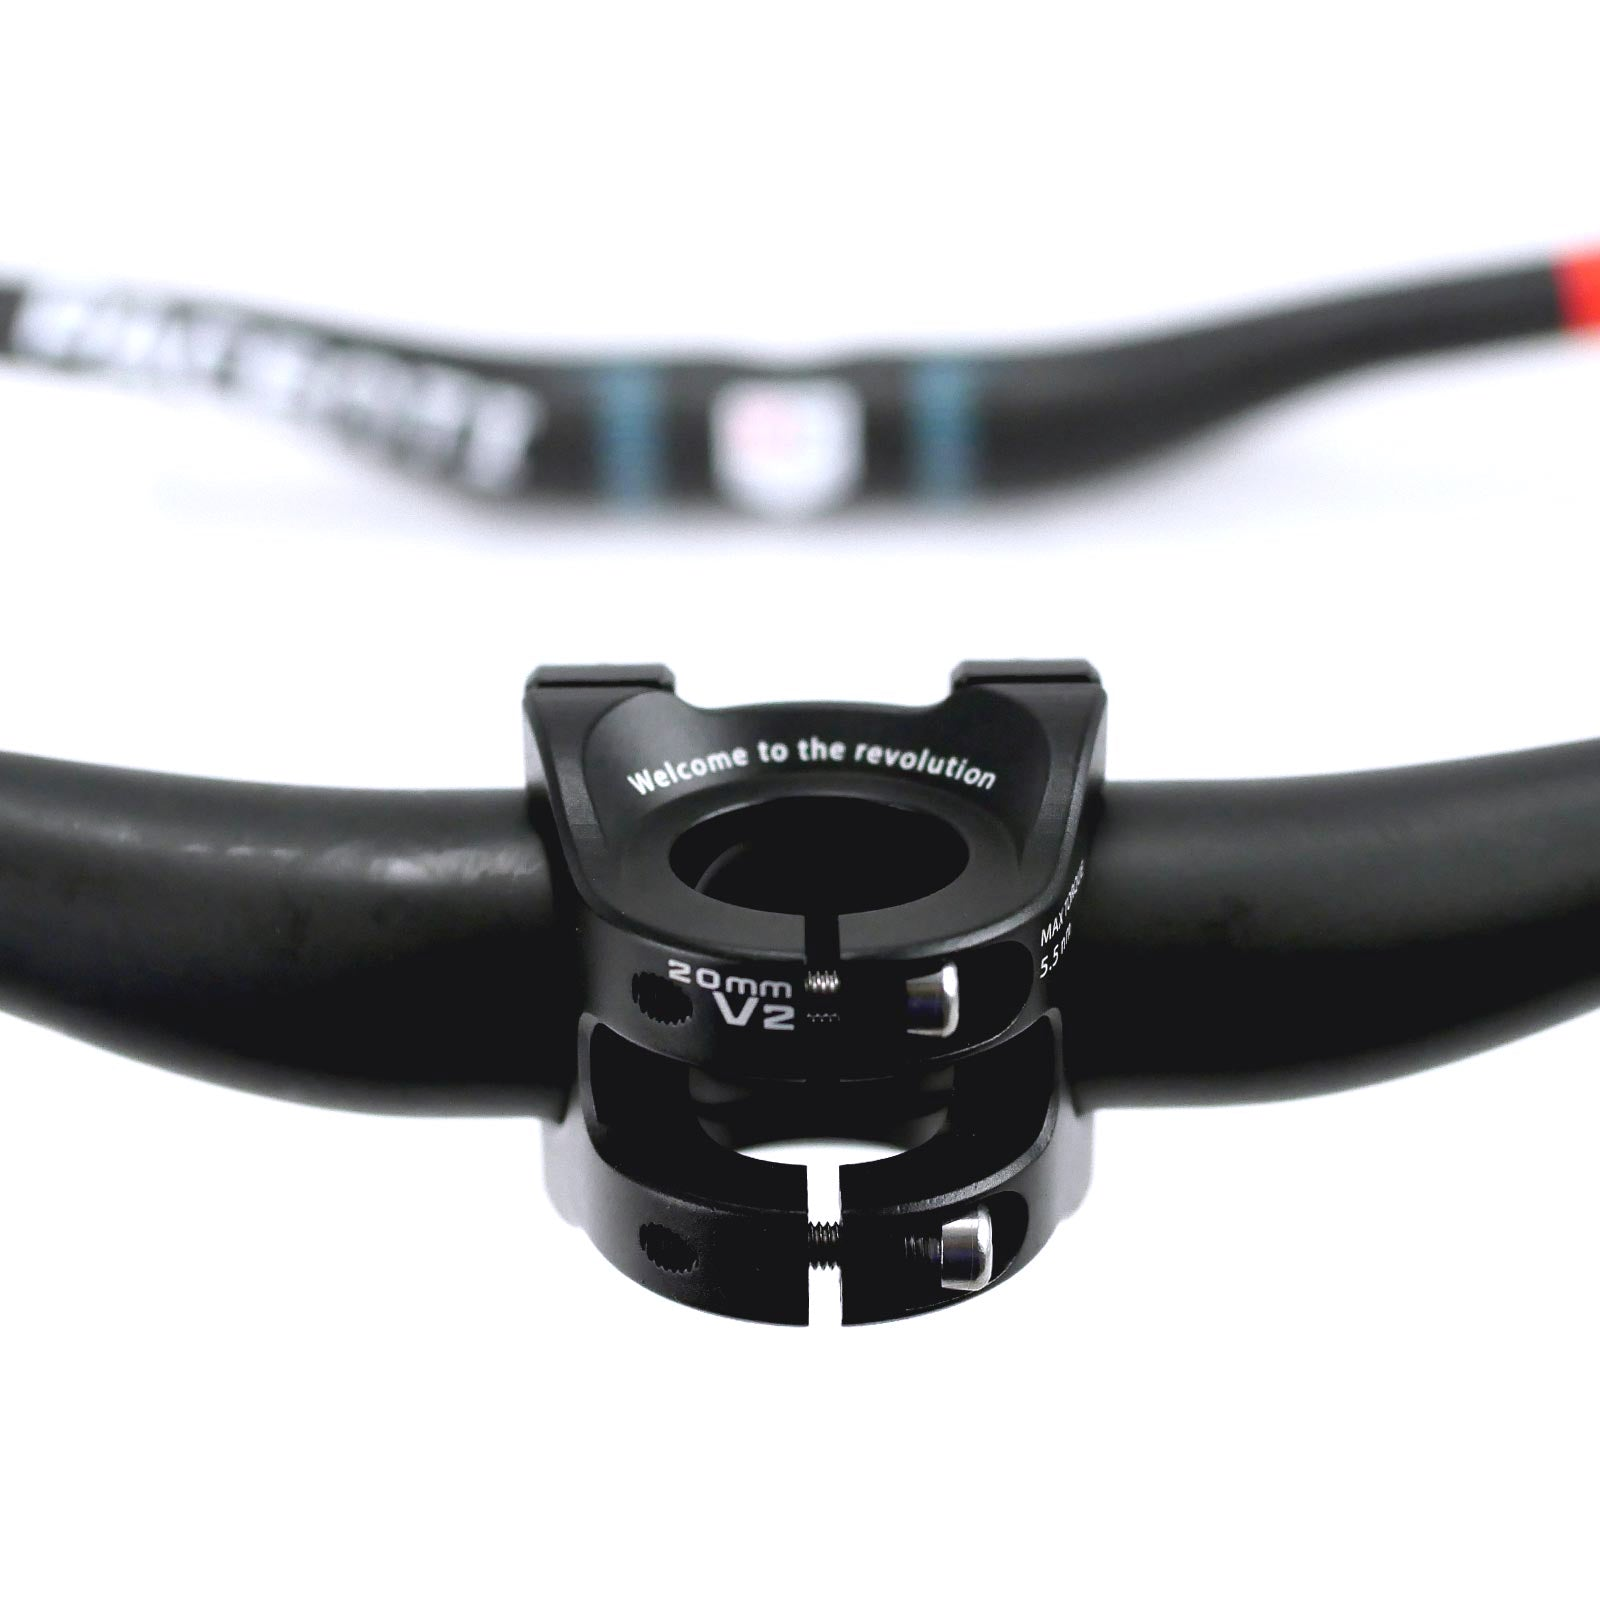 P-dent carbon bar and stem set 25mm rise